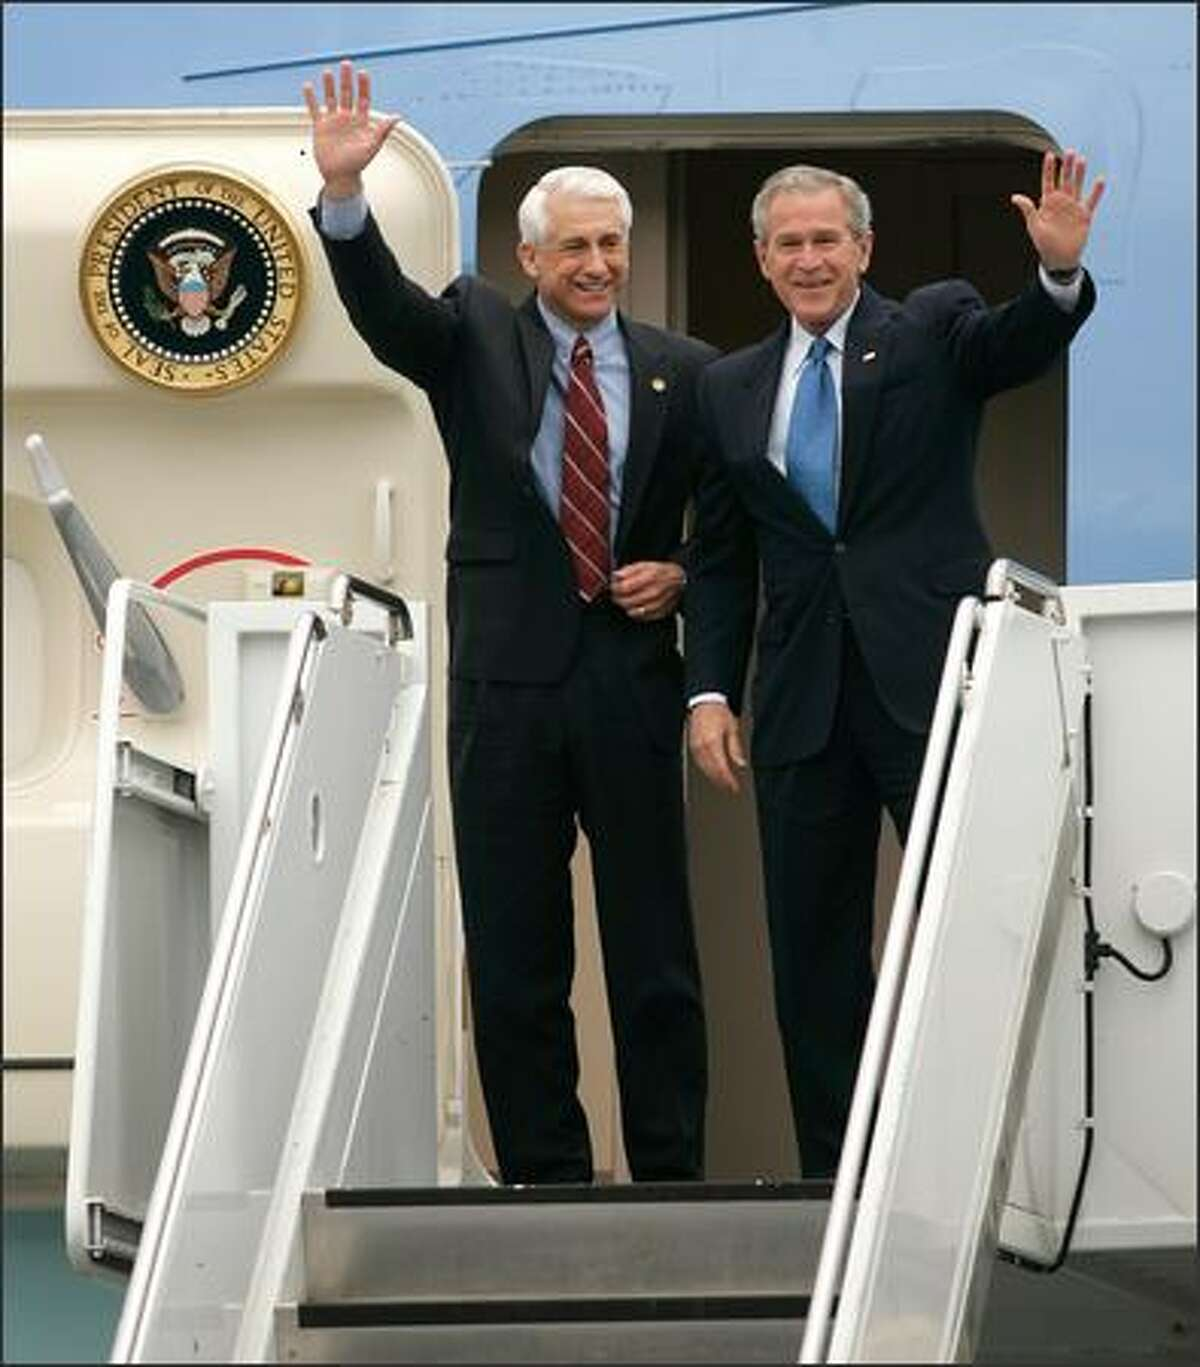 Rep. Dave Reichert, left, and President George W. Bush arrive at Boeing Field for a Seattle-area fundraising trip.